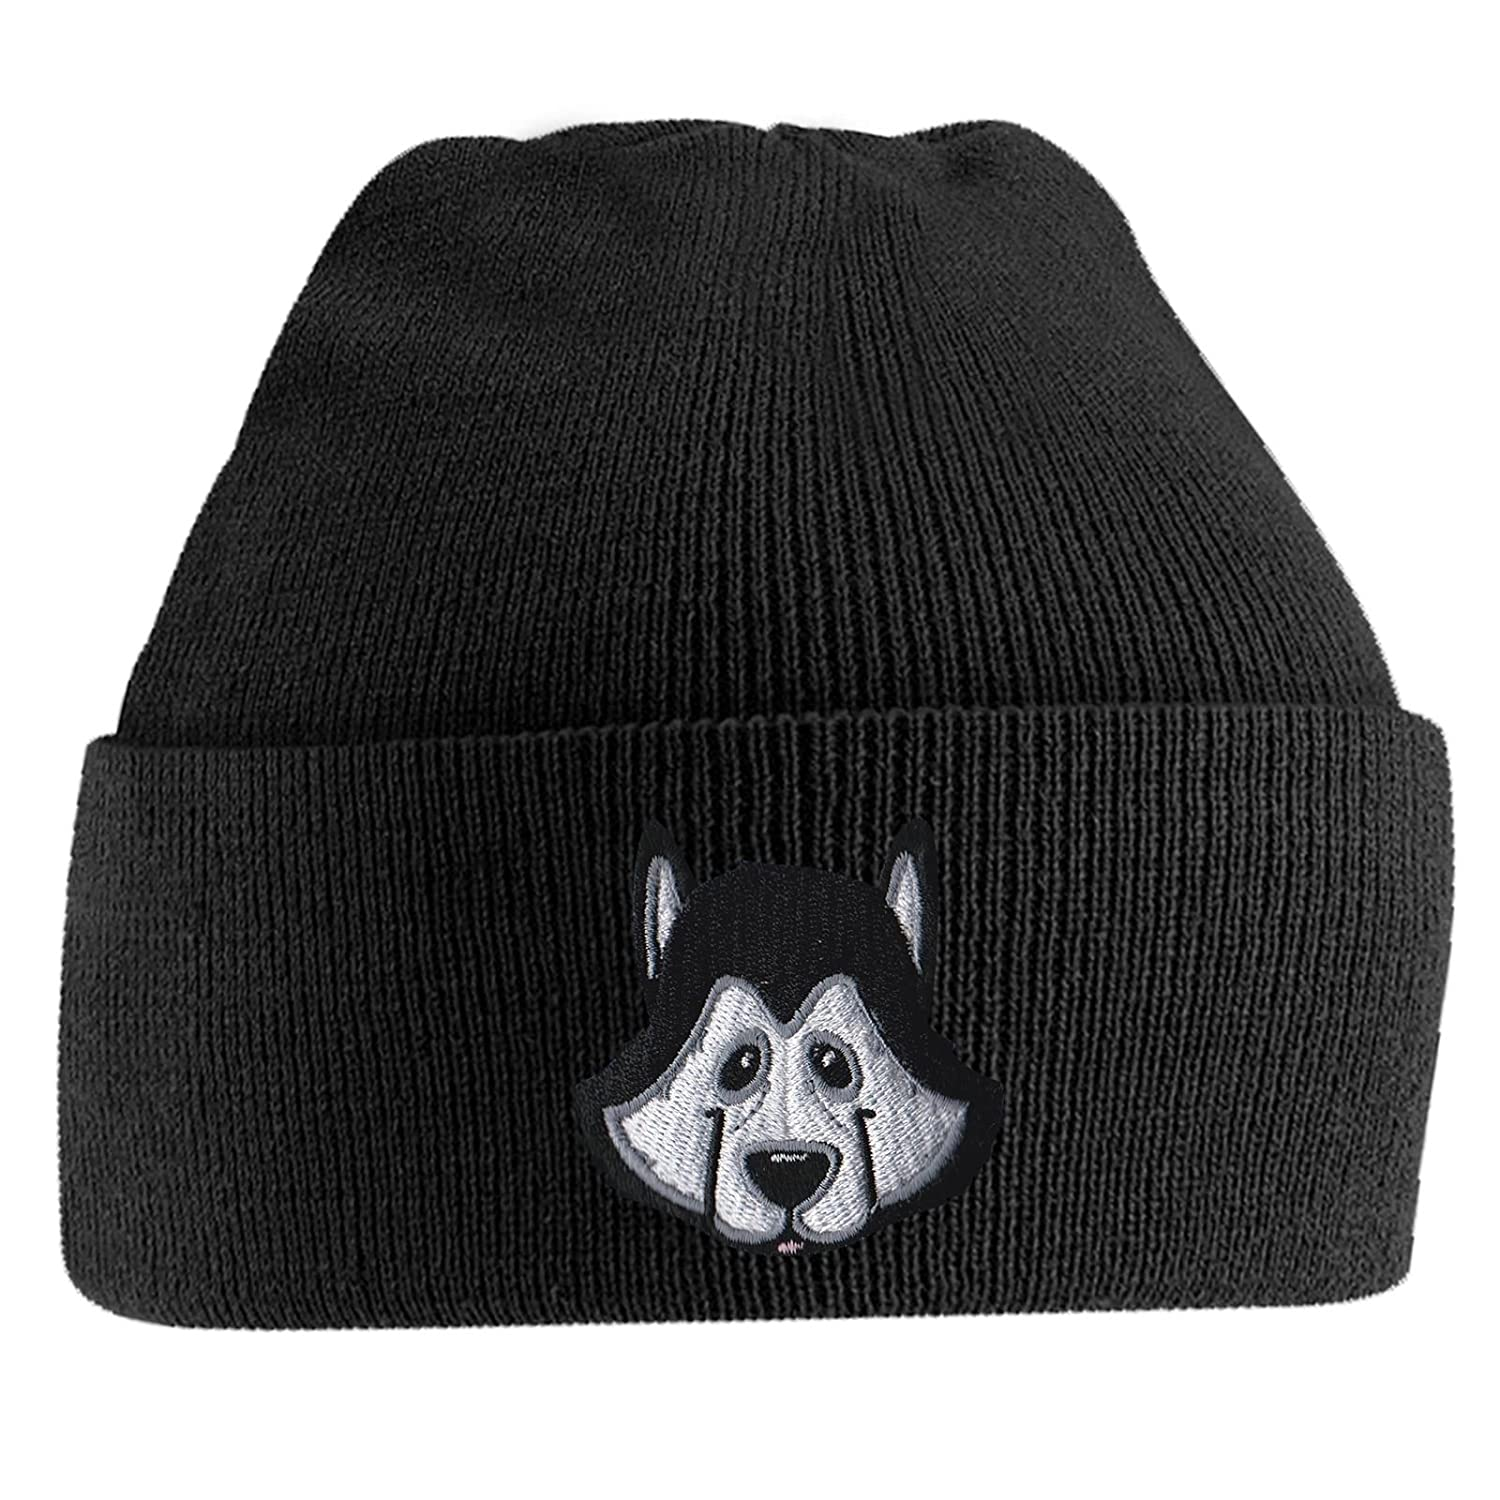 e5473c5cf18 Beanie Hats for Men Siberian Husky Beanies Embroidered Animal Face Knitted  Wooly Hat One Size Fits All Beanie Hat - Black  Amazon.co.uk  Clothing